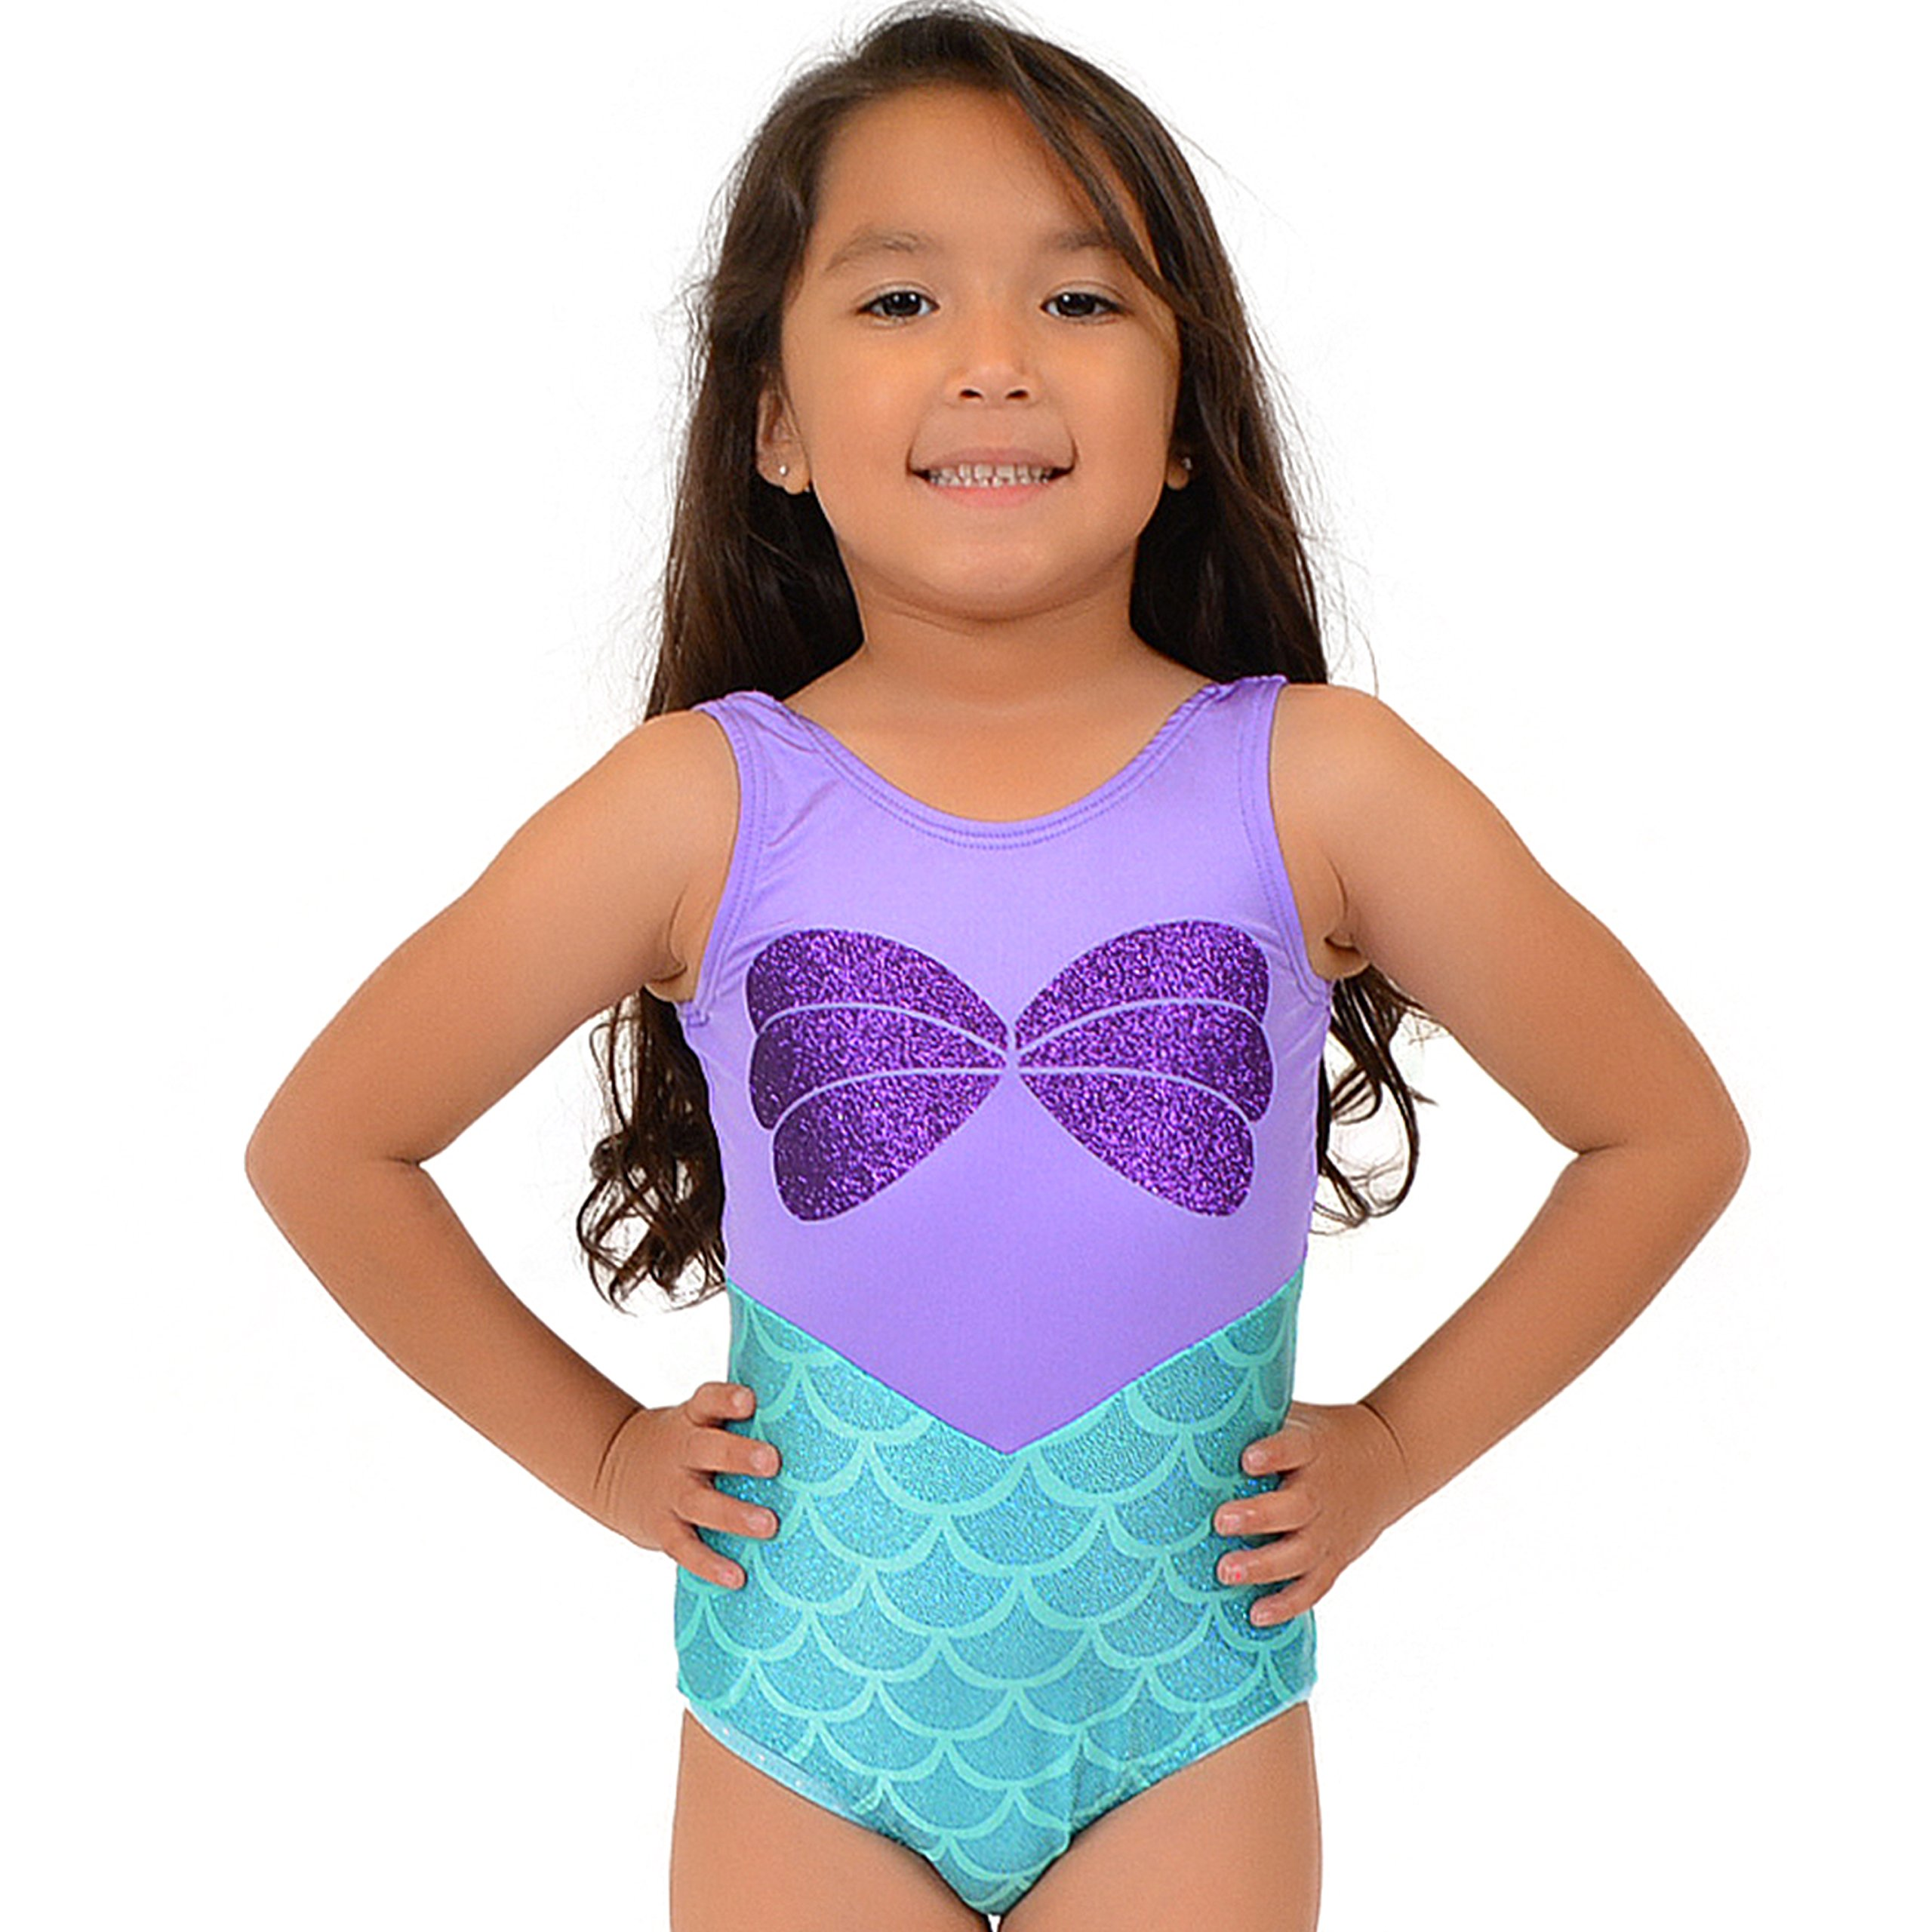 Stretch is Comfort Girl's Mystique Ariel Leotard XX-Small by Stretch is Comfort